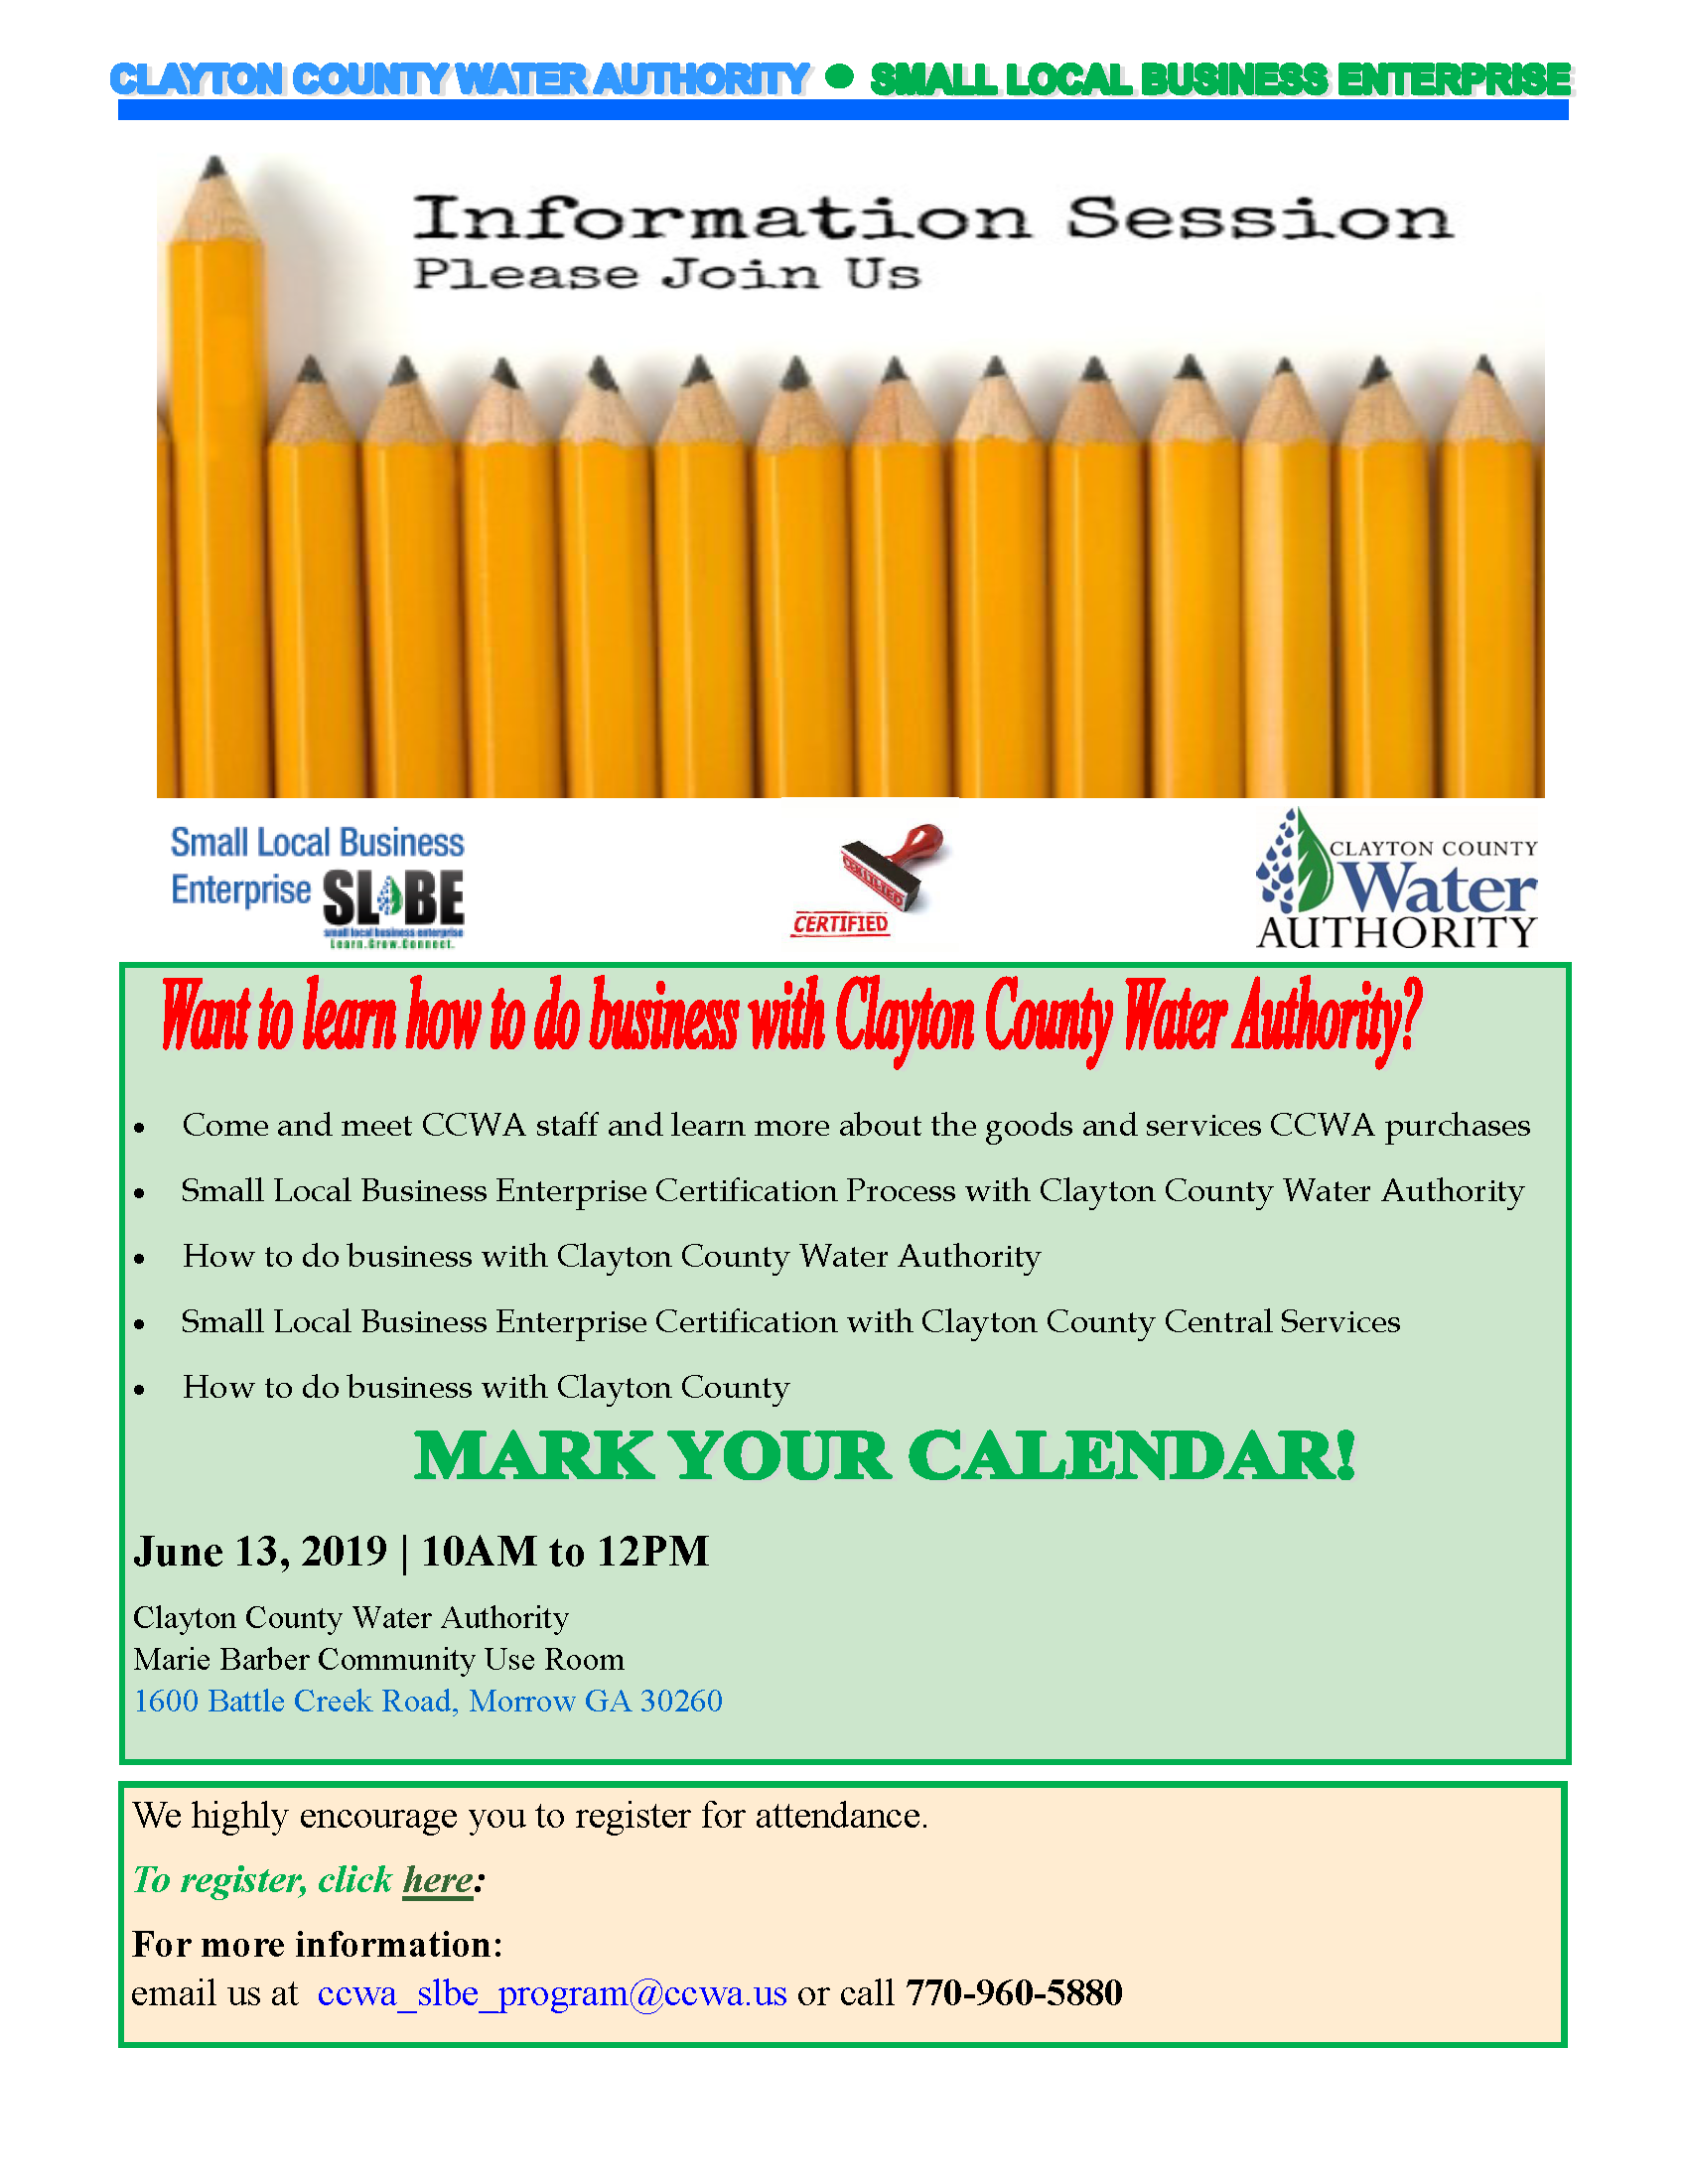 CCWA's SLBE Information Session Thursday, June 13, 2019